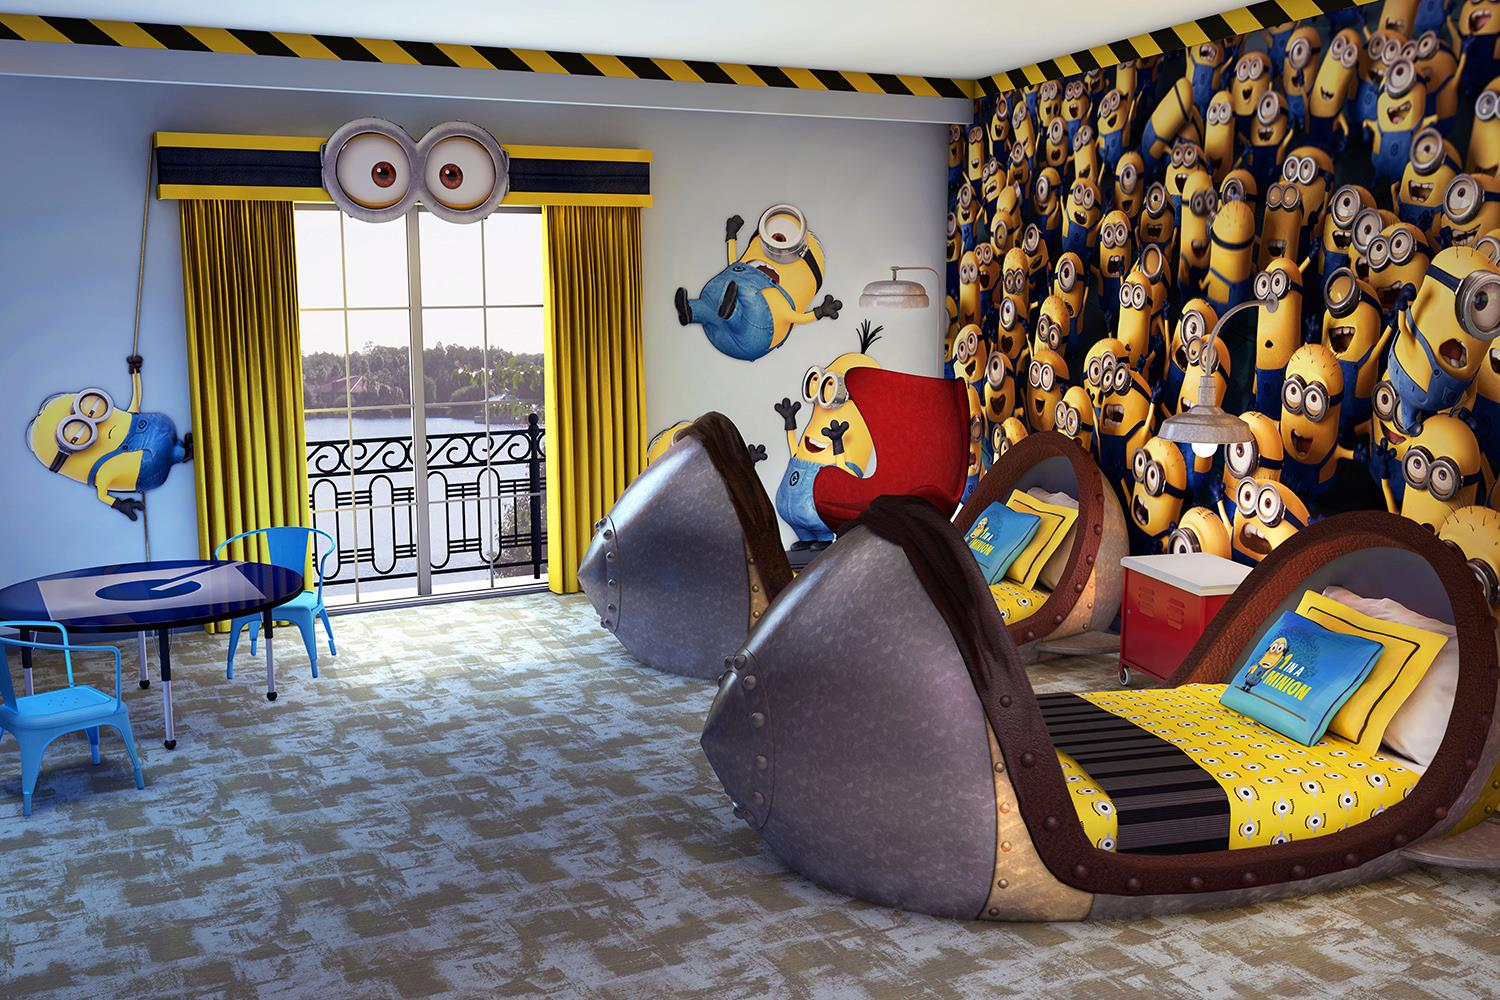 Portofino Bay Hotel Despicable Me-themed kids' suites